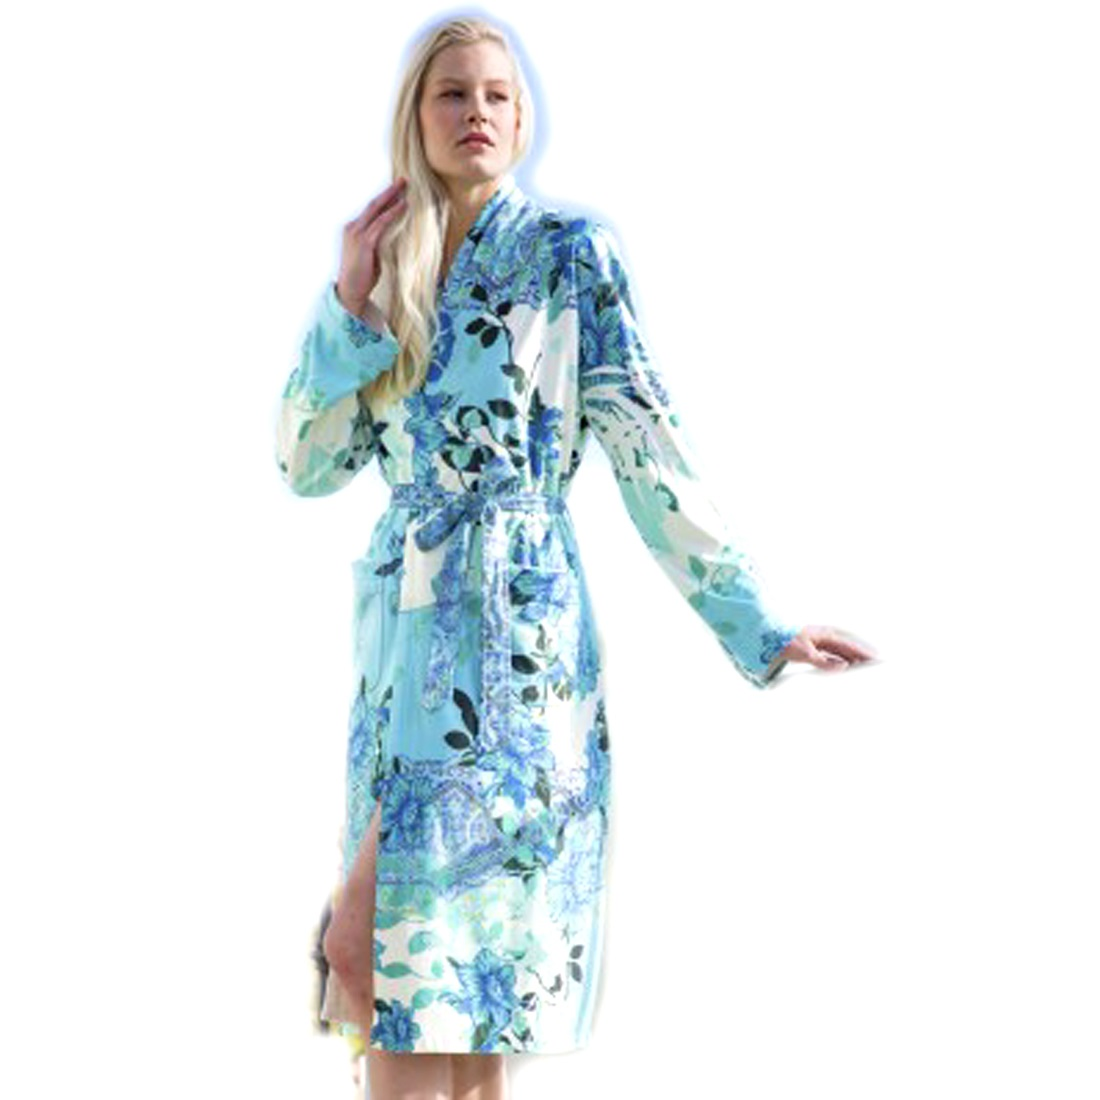 S M Wrap Up By Vp Floral Inspired Blue Microfiber Short Robe Clothing Women